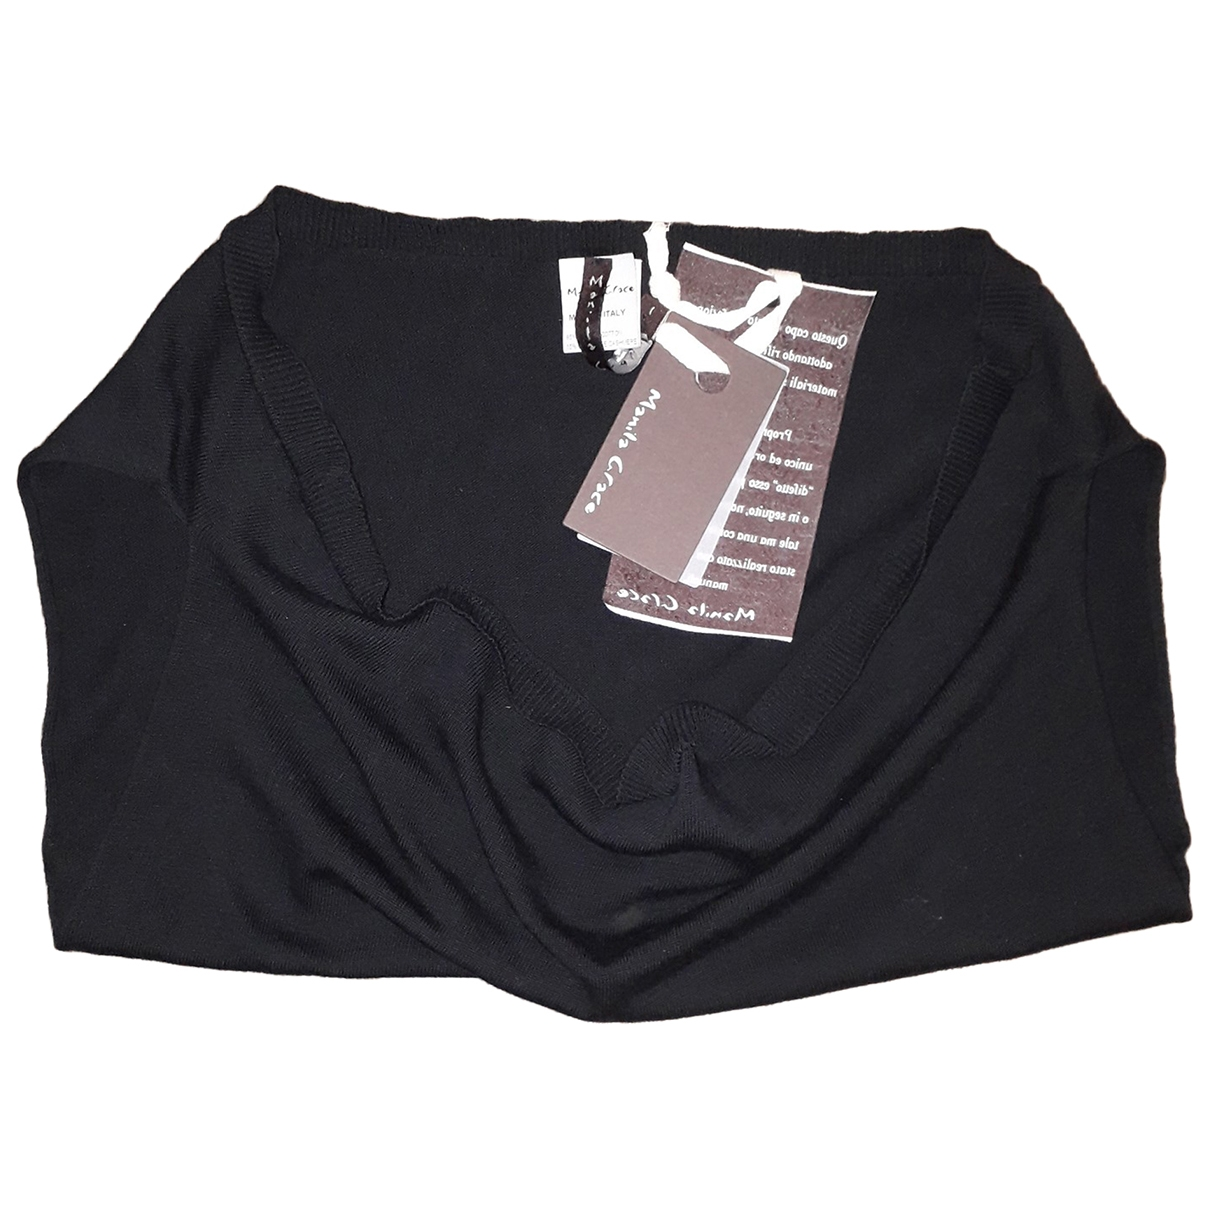 Non Signé / Unsigned \N Black Cotton  top for Women 1 0-5